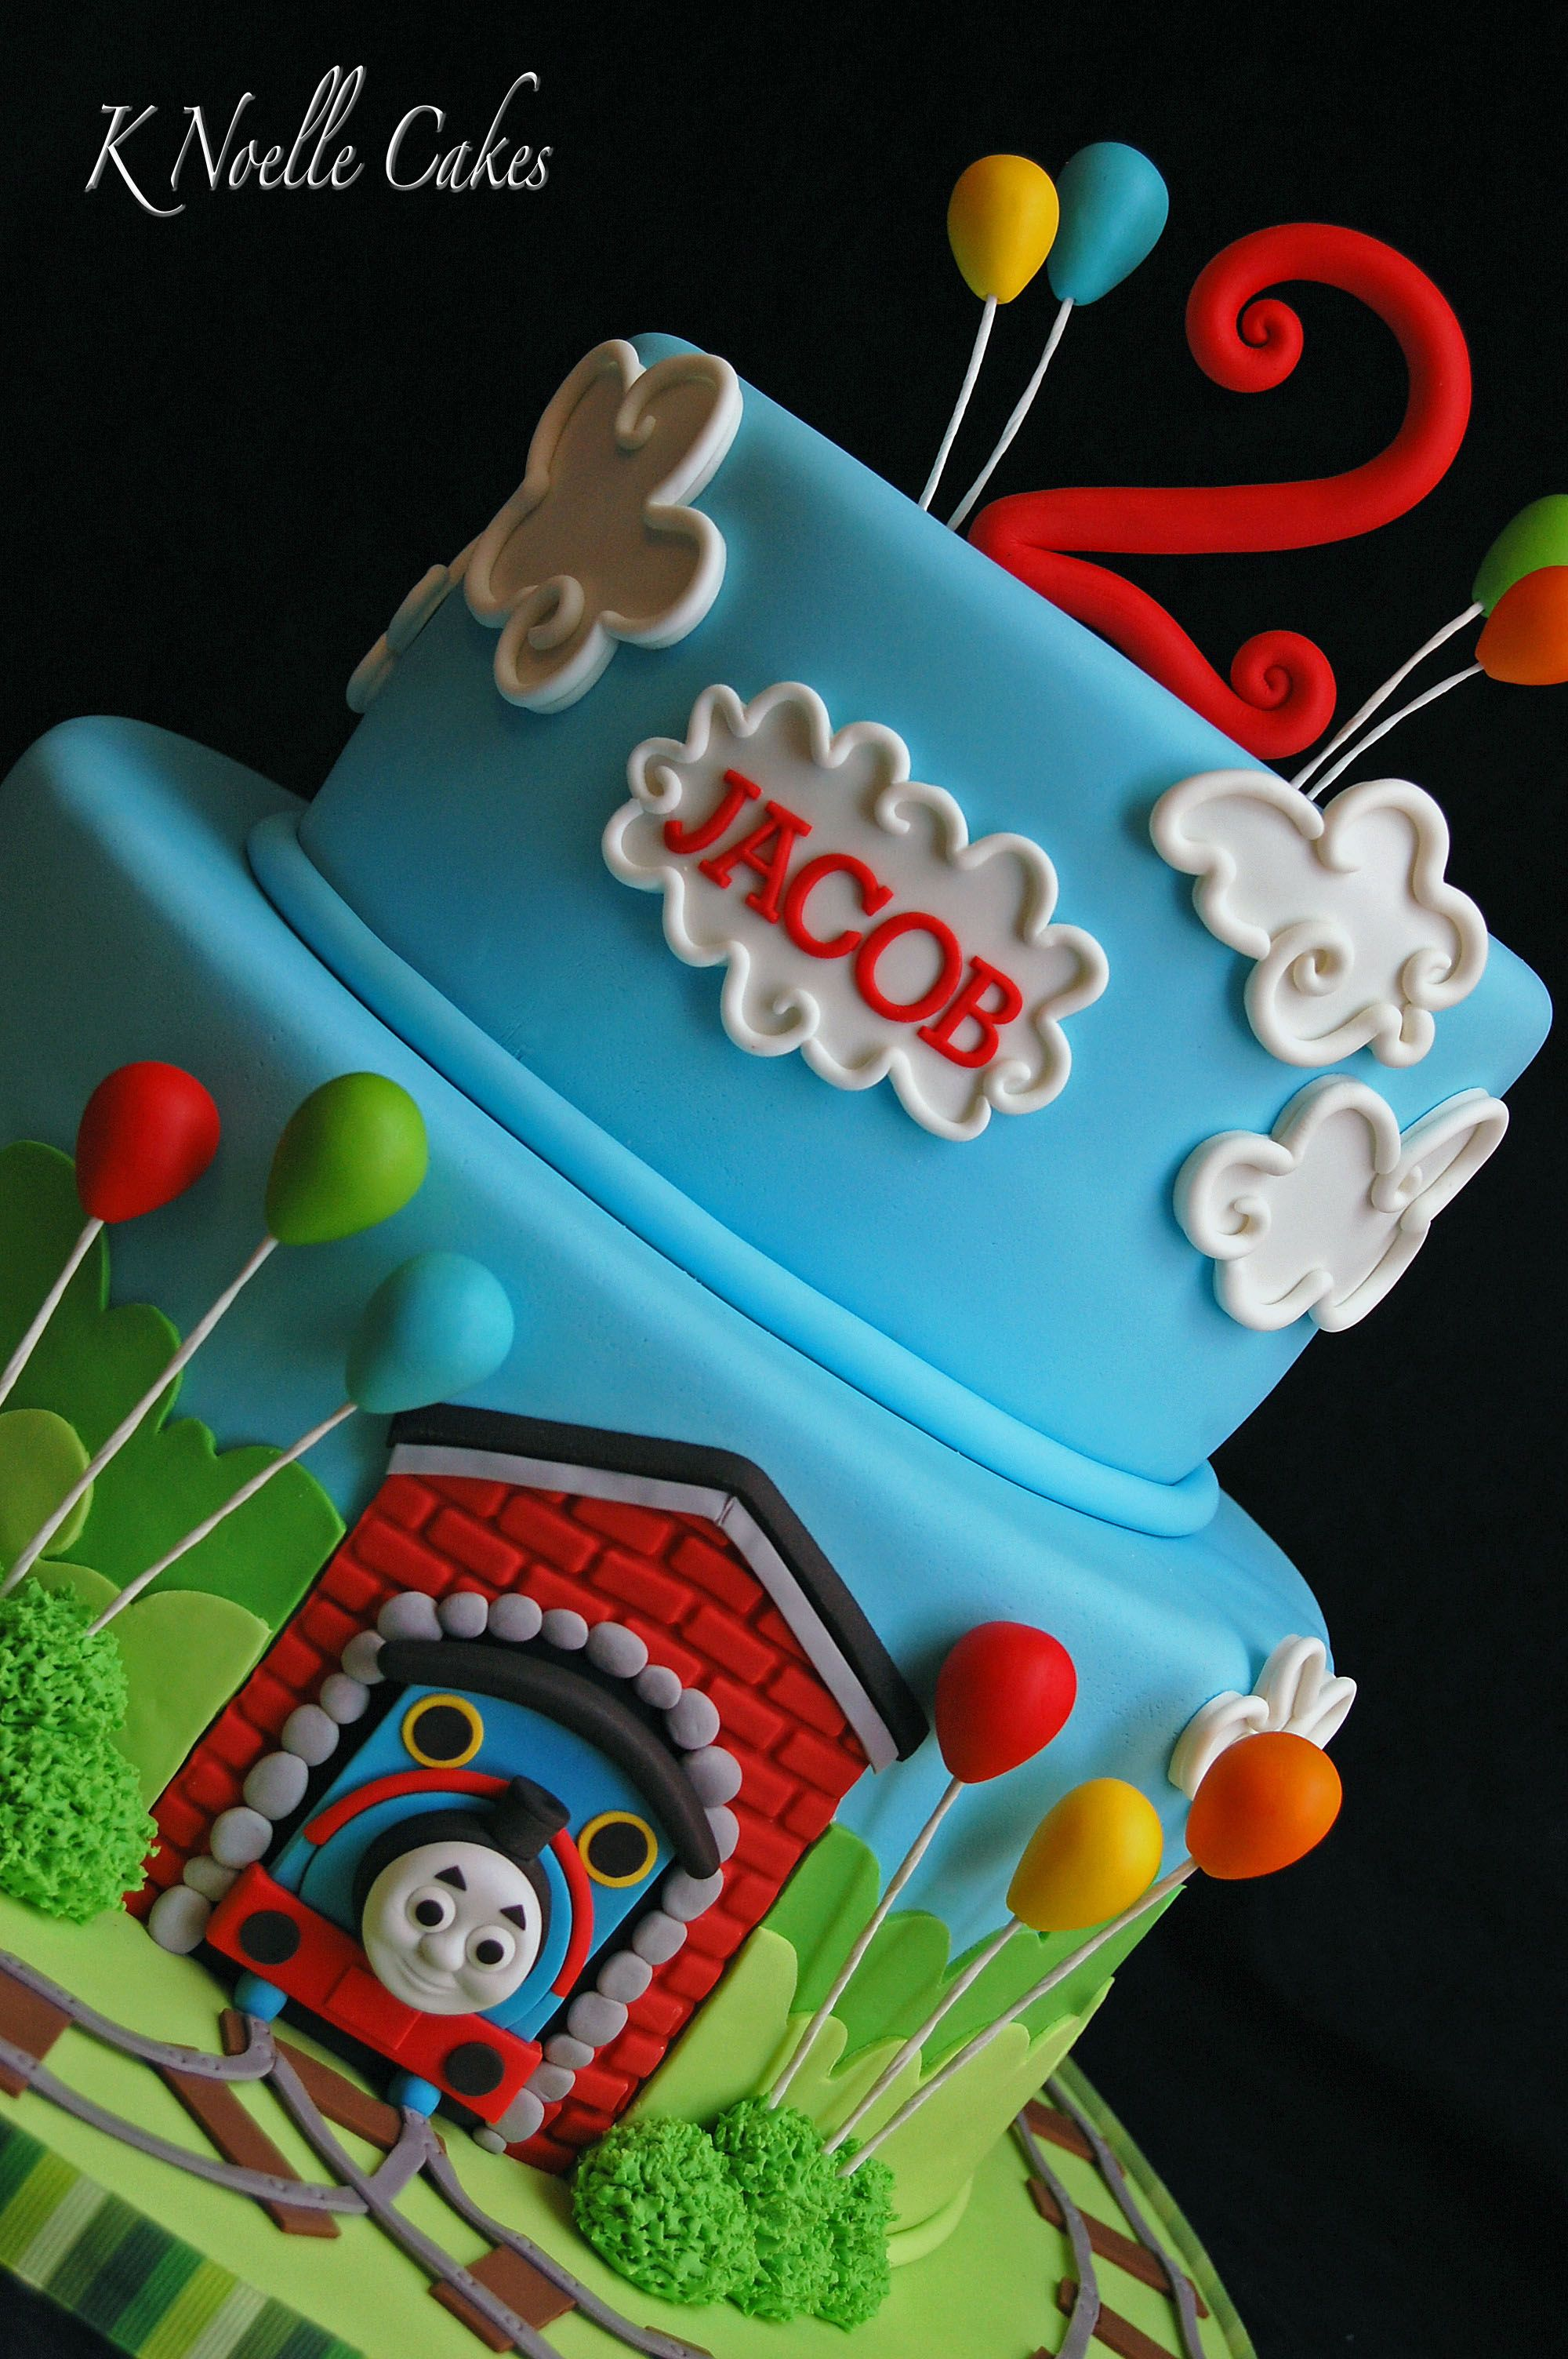 Kuchen Lokomotive Thomas The Train Theme Cake By K Noelle Cakes Torten